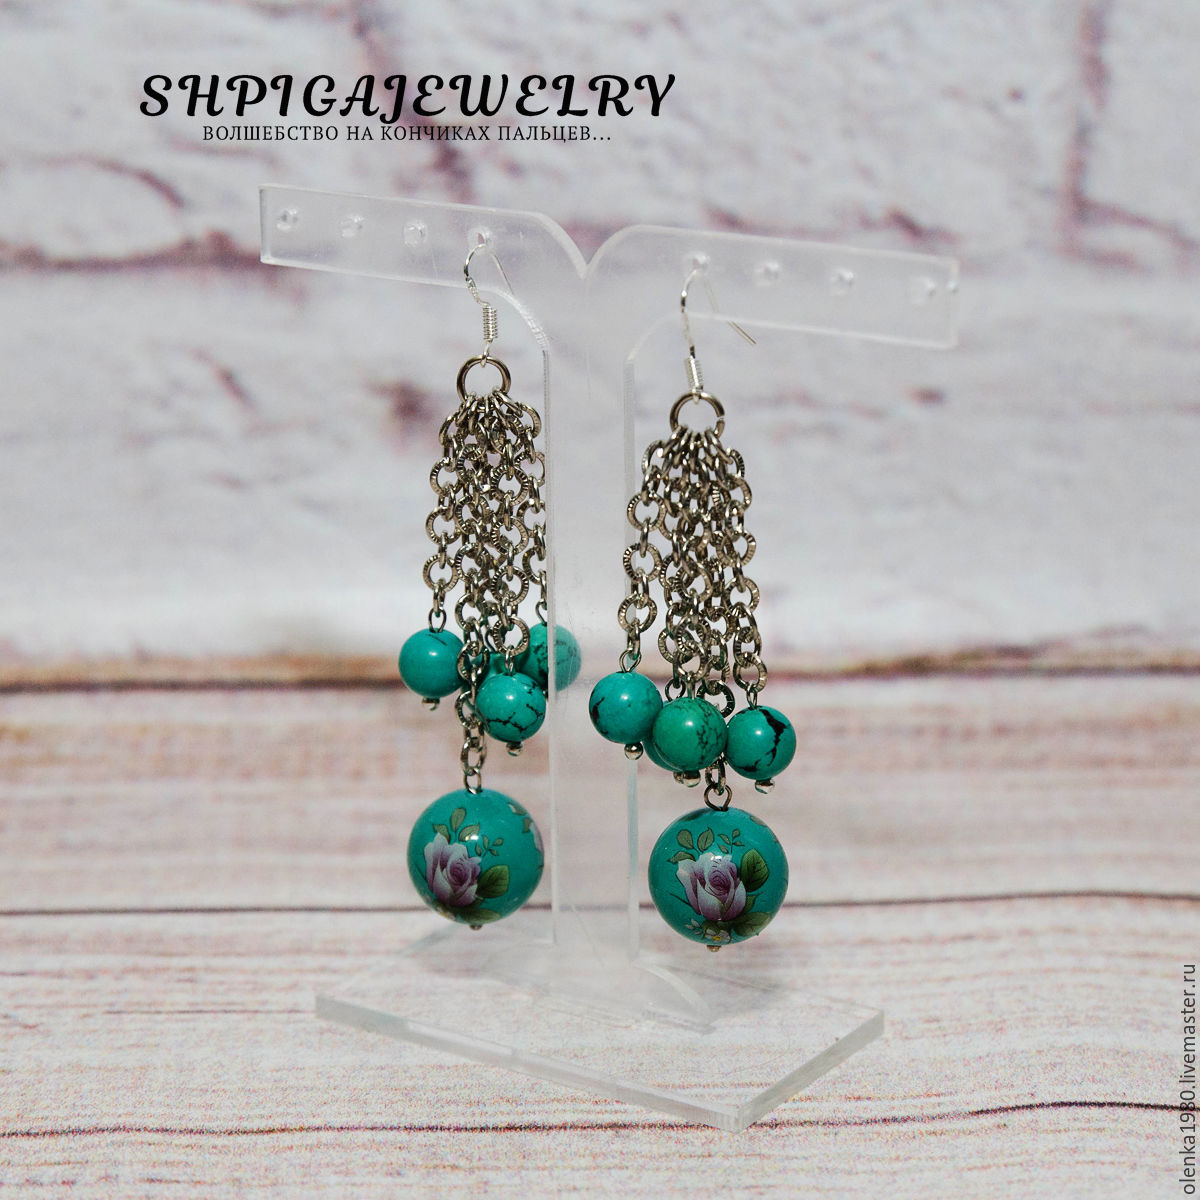 Earrings with natural turquoise beads and Tensha.